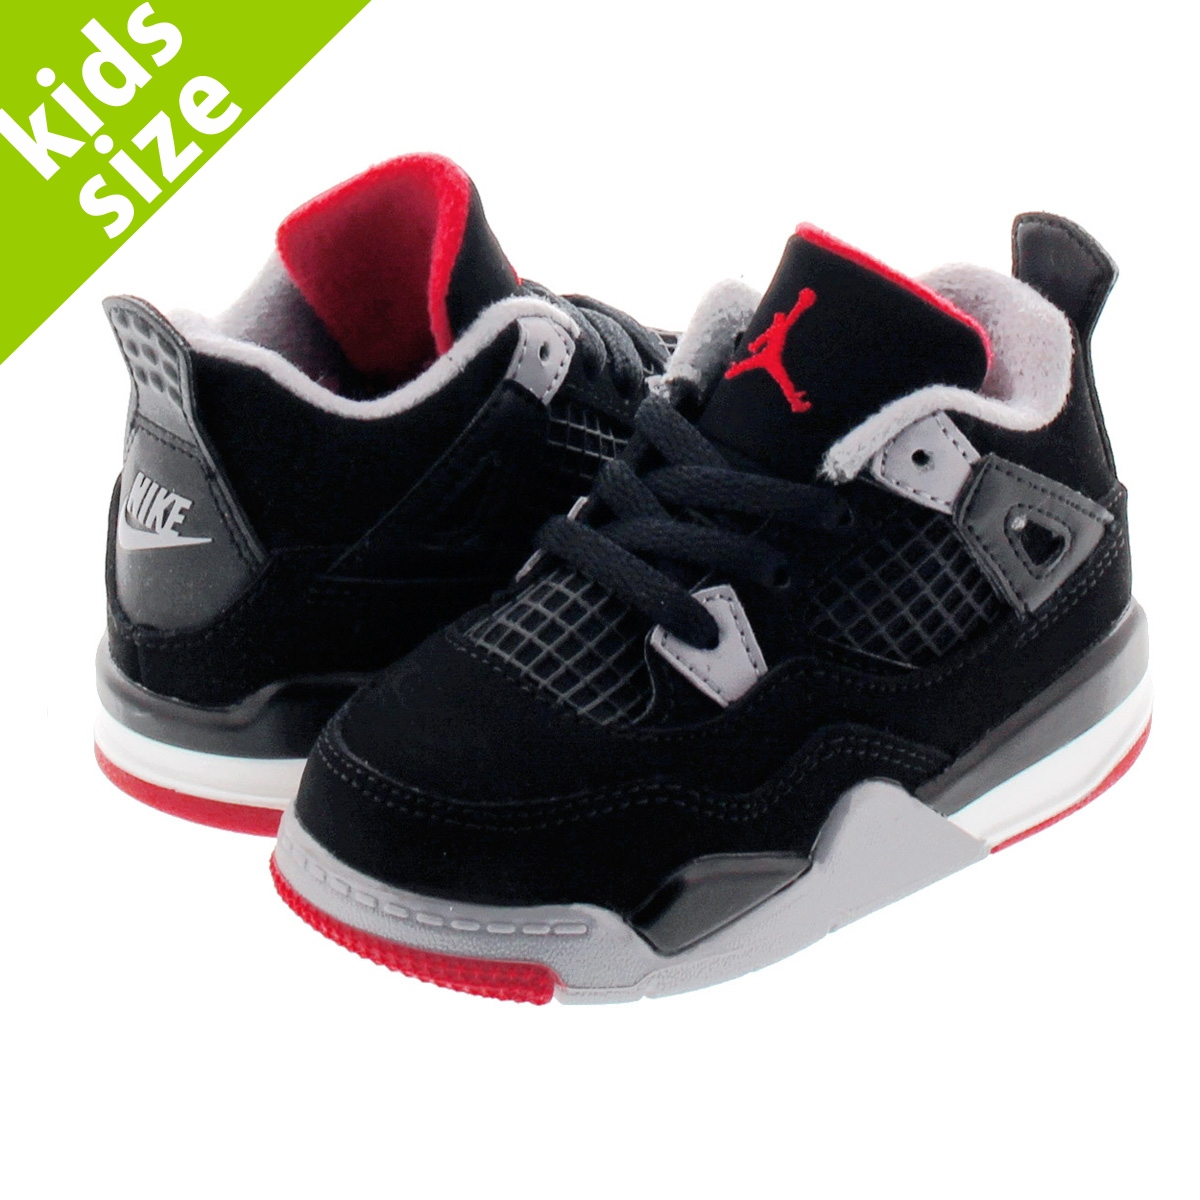 【キッズサイズ】【16.0~22.0cm】 NIKE AIR JORDAN 4 RETRO TD ナイキ エア ジョーダン 4 レトロ TD BLACK/FIRE RED/CEMENT GREY/SUMMIT WHITE bq7670-060